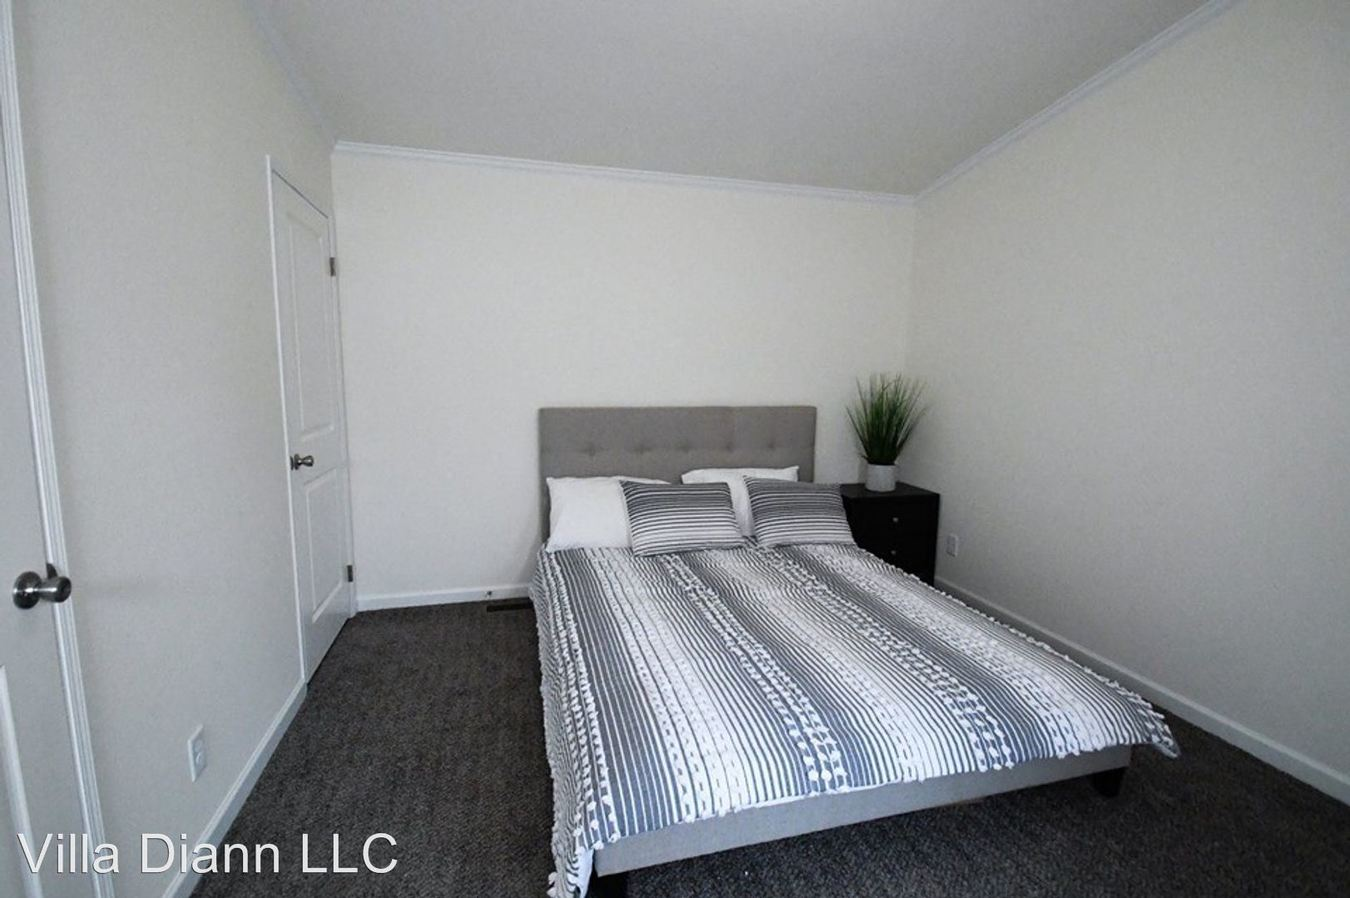 3 Bedrooms 2 Bathrooms Apartment for rent at 4400 Lasalle Dr. in Eau Claire, WI